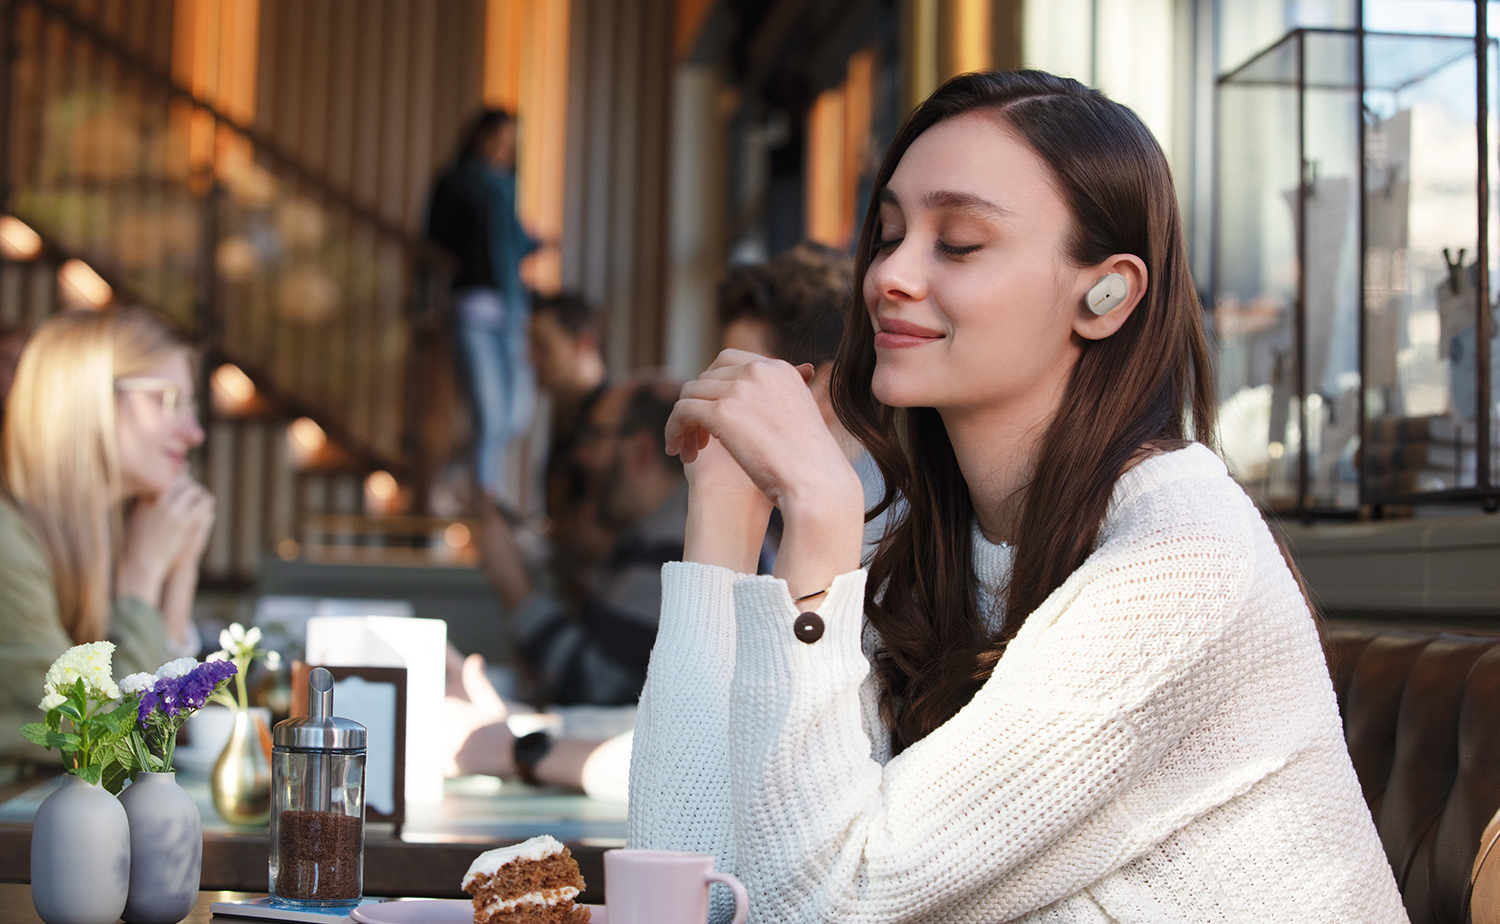 image of woman wearing truly wireless headphones